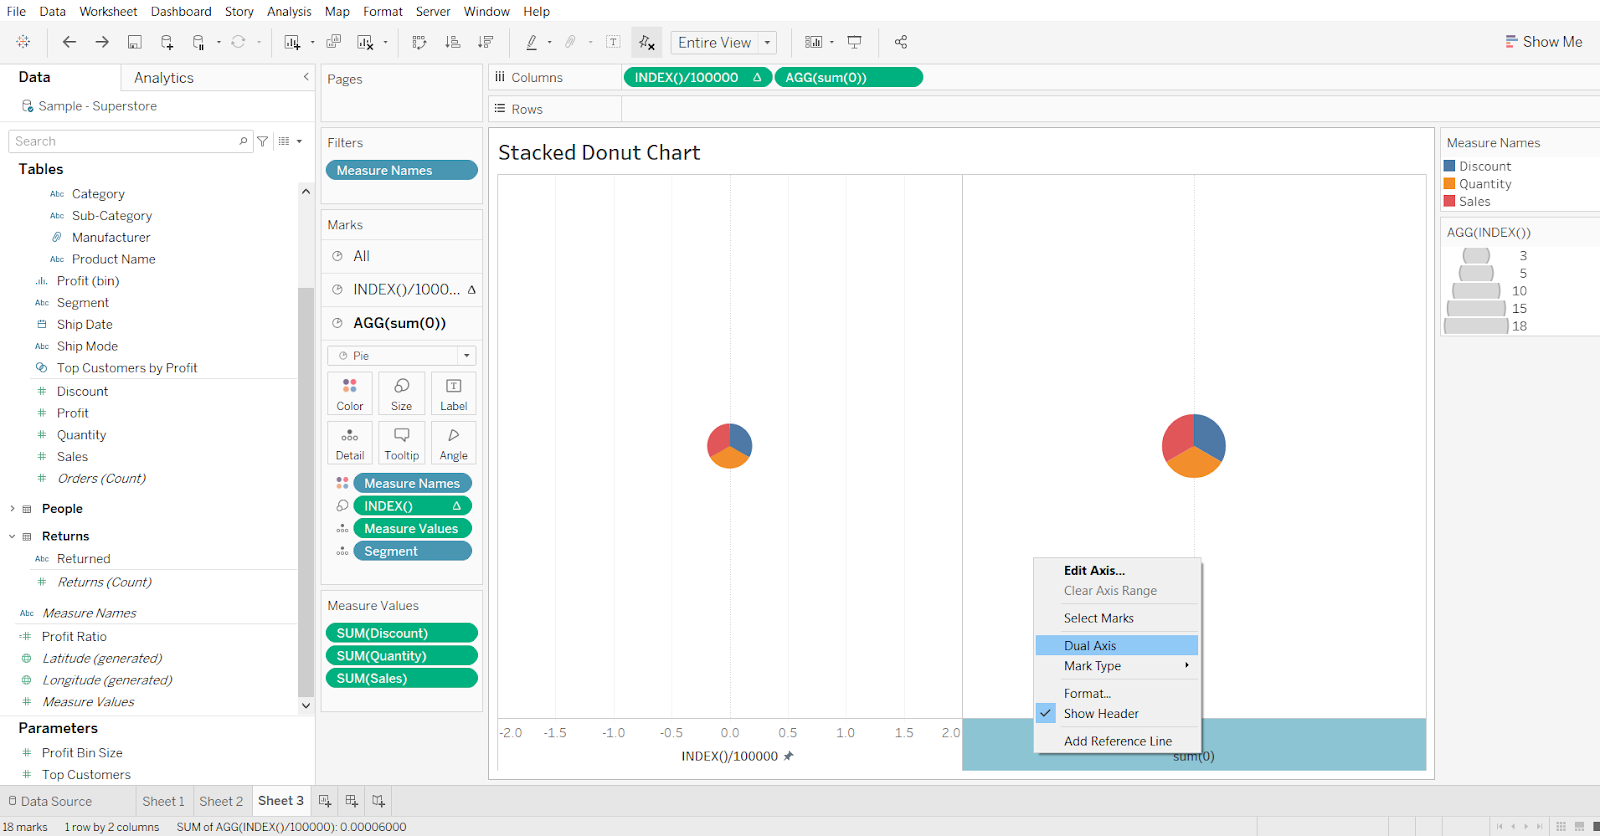 Stacked Donut chart process